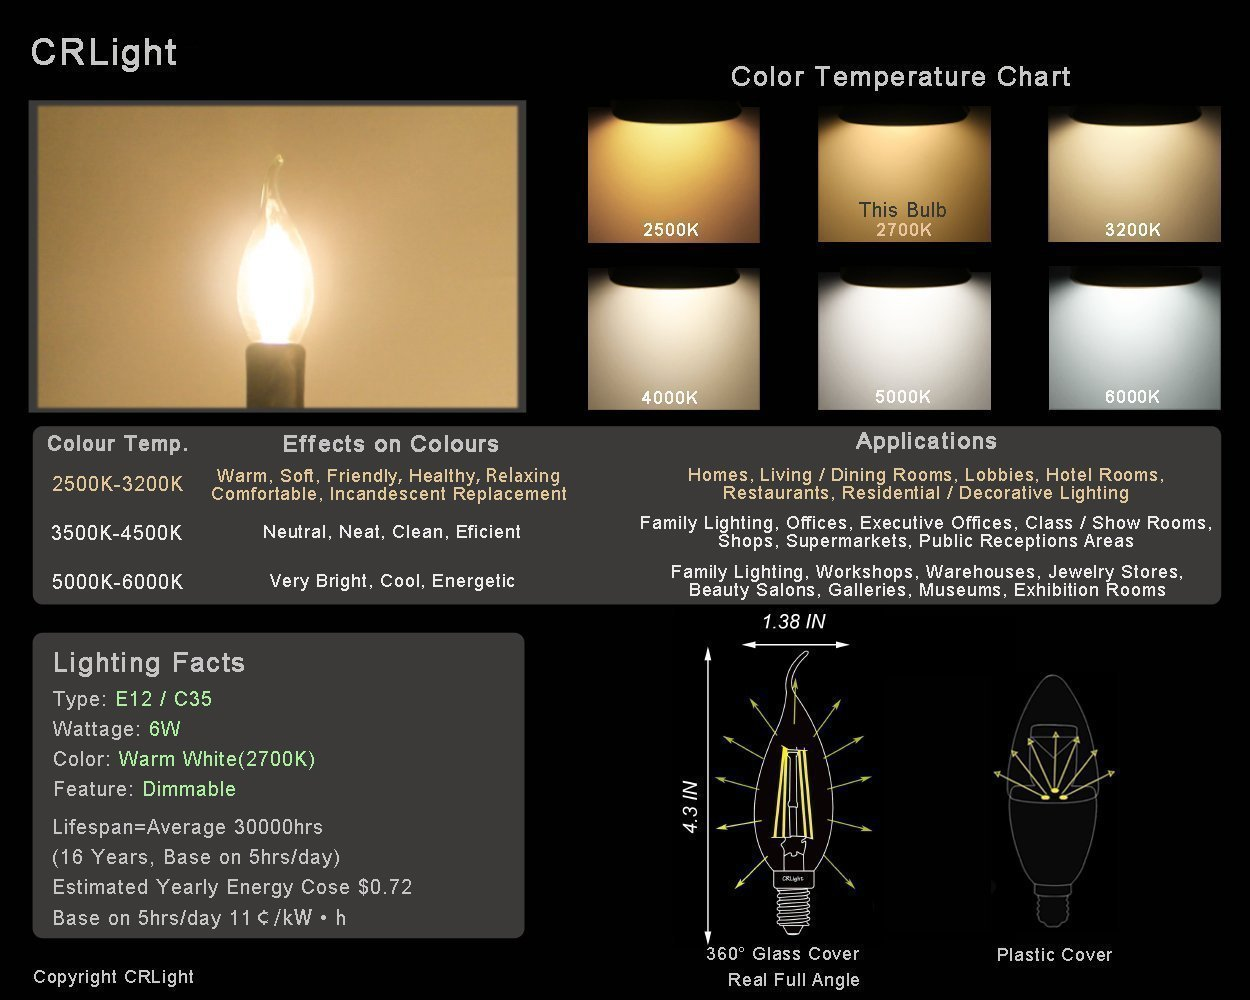 Led color temperature chart targergolden dragon led color temperature chart nvjuhfo Choice Image